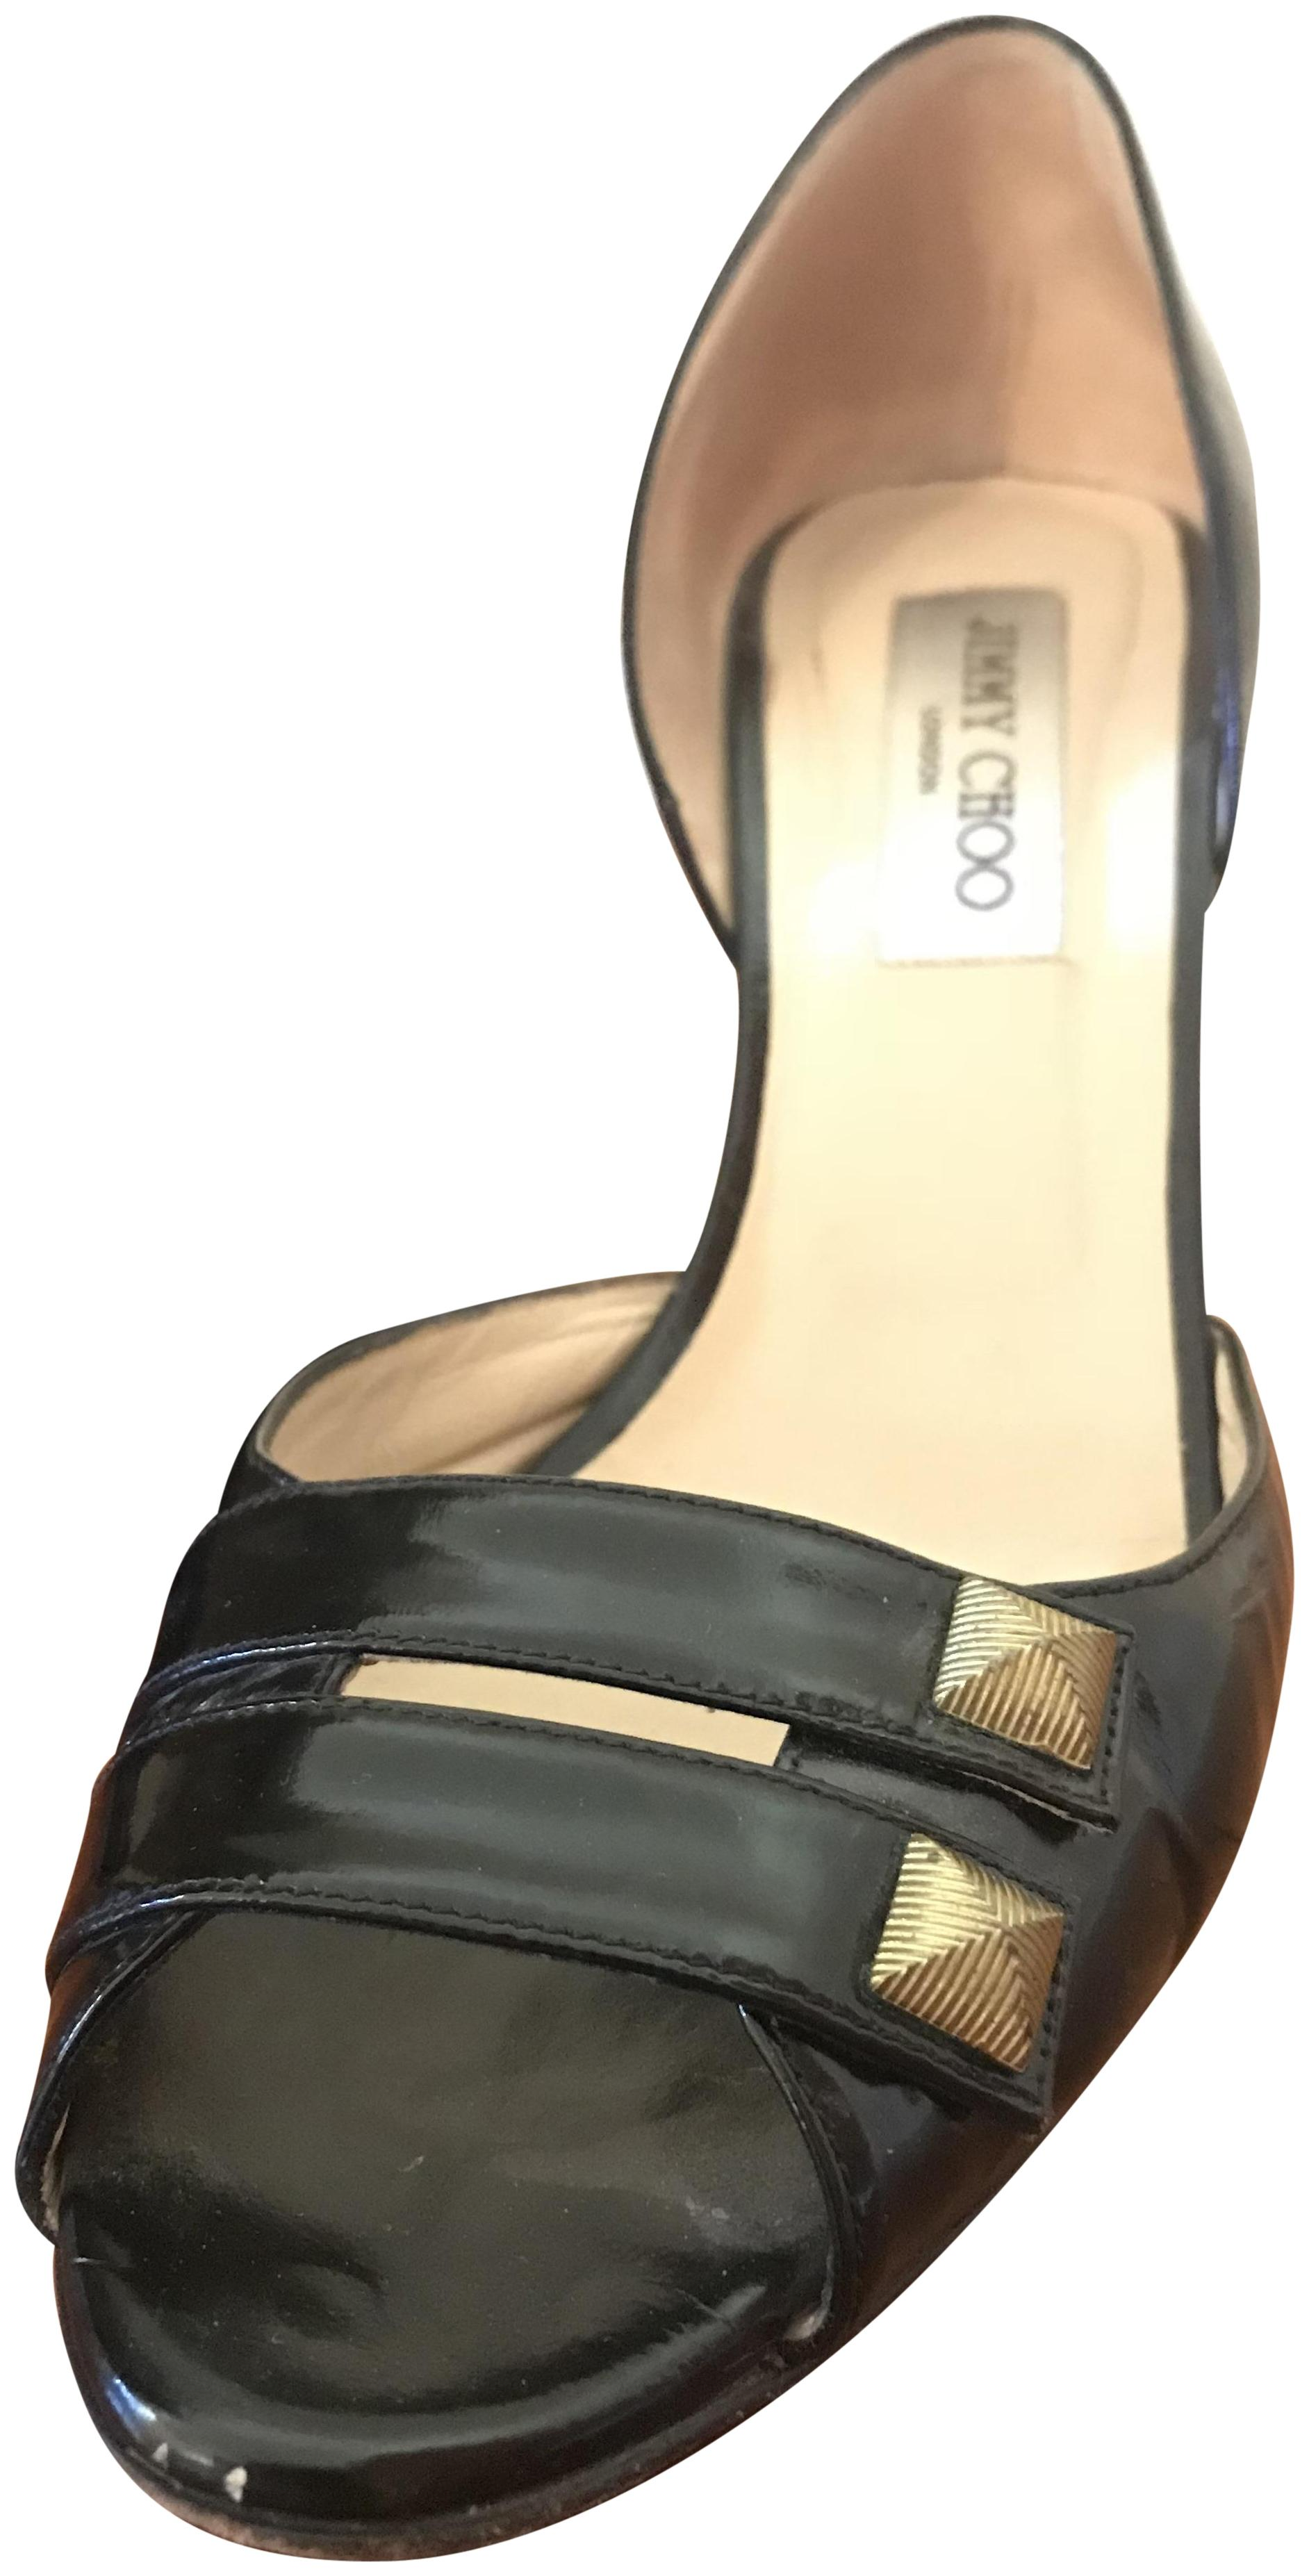 492af72064b Jimmy Choo Black Patent Patent Patent Leather Peep Toe with Gold Studs  Sandals Size EU 39.5 ...